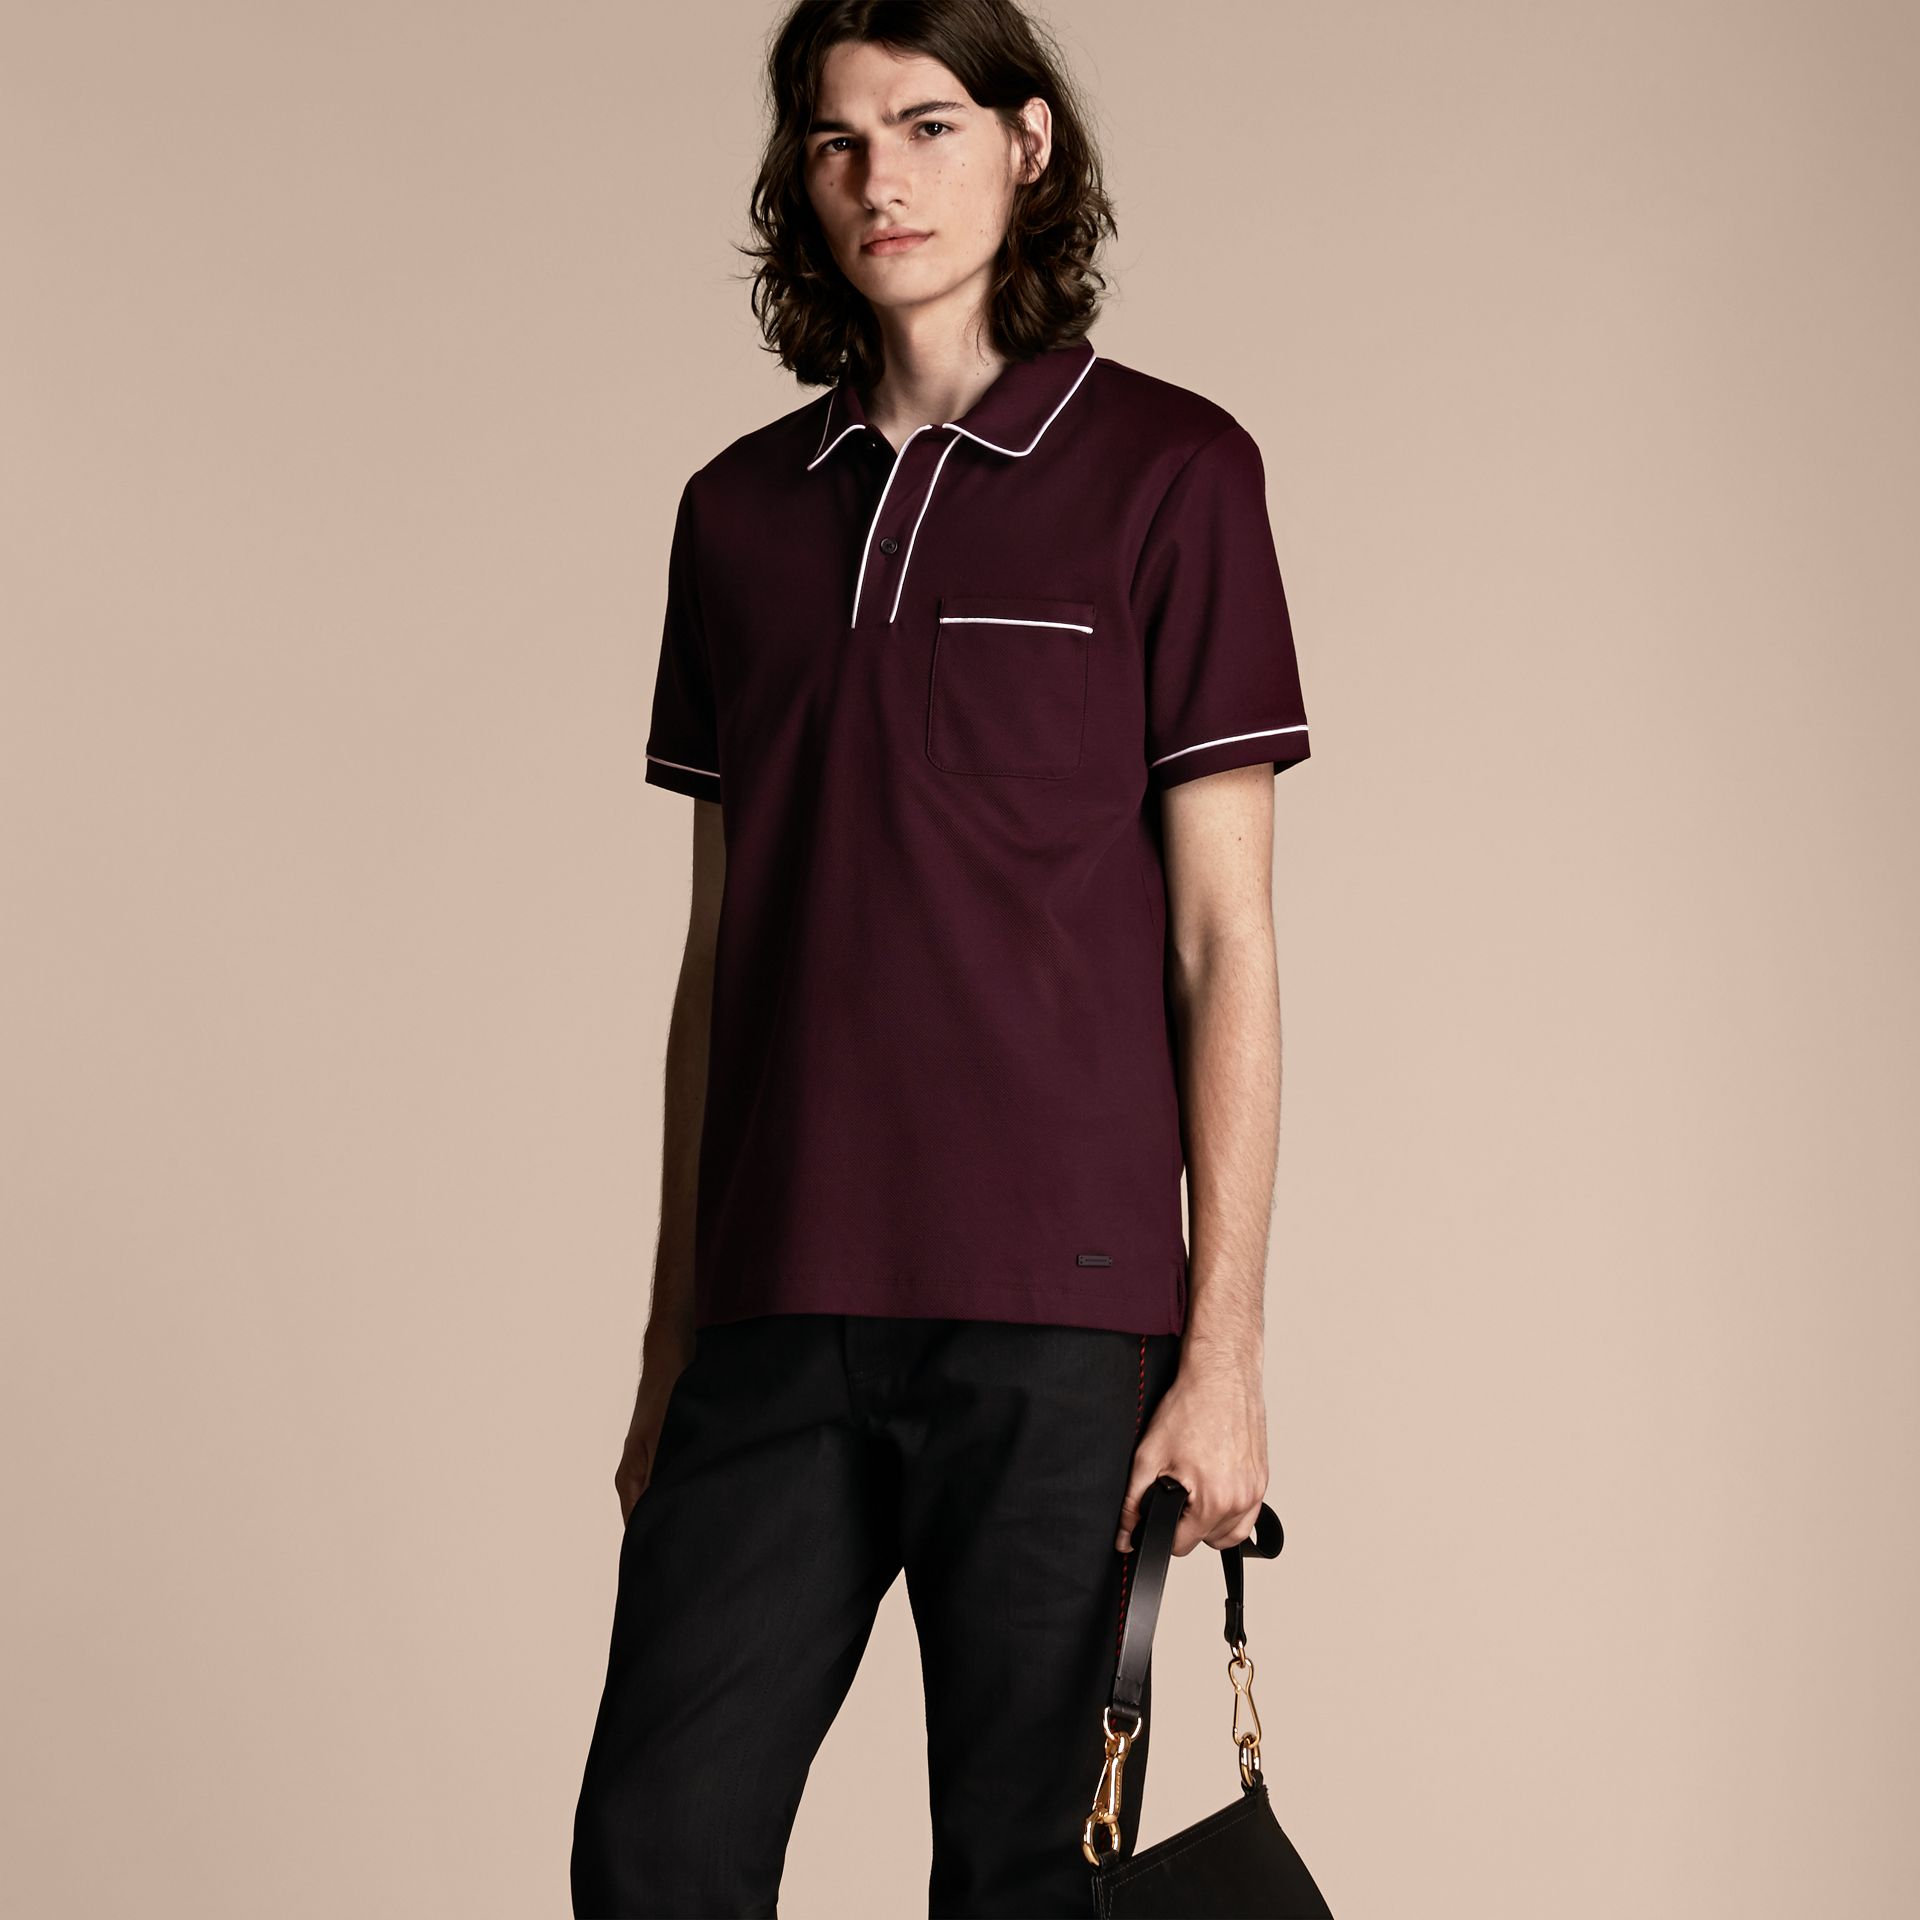 Burgundy Piped Cotton Piqué Polo Shirt Burgundy - gallery image 1